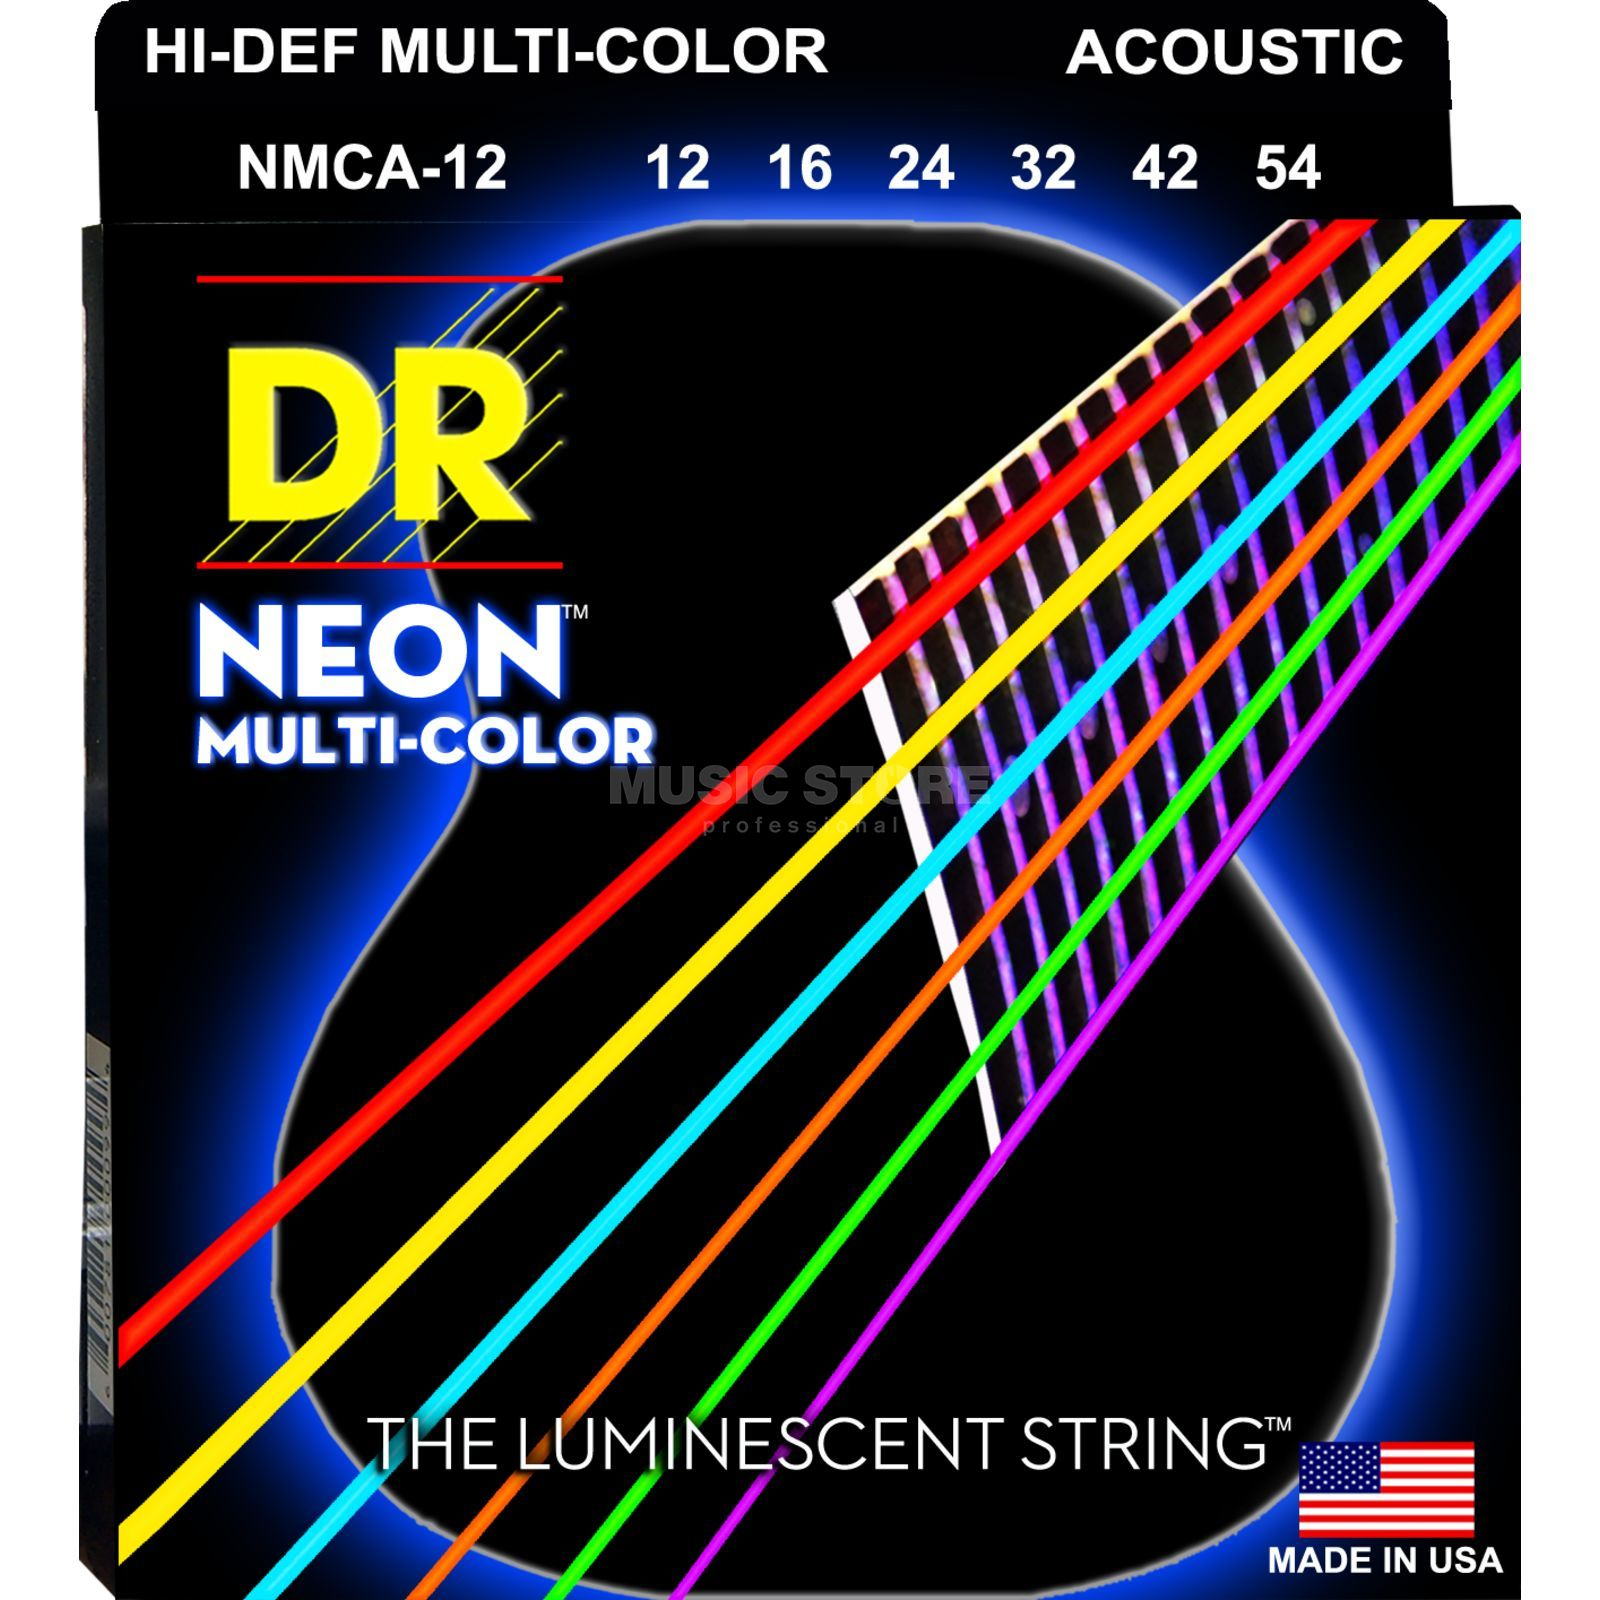 DR A-Guitar Strings 12-54 Hi-Def Neon Multi-Color MCA-12 Produktbillede